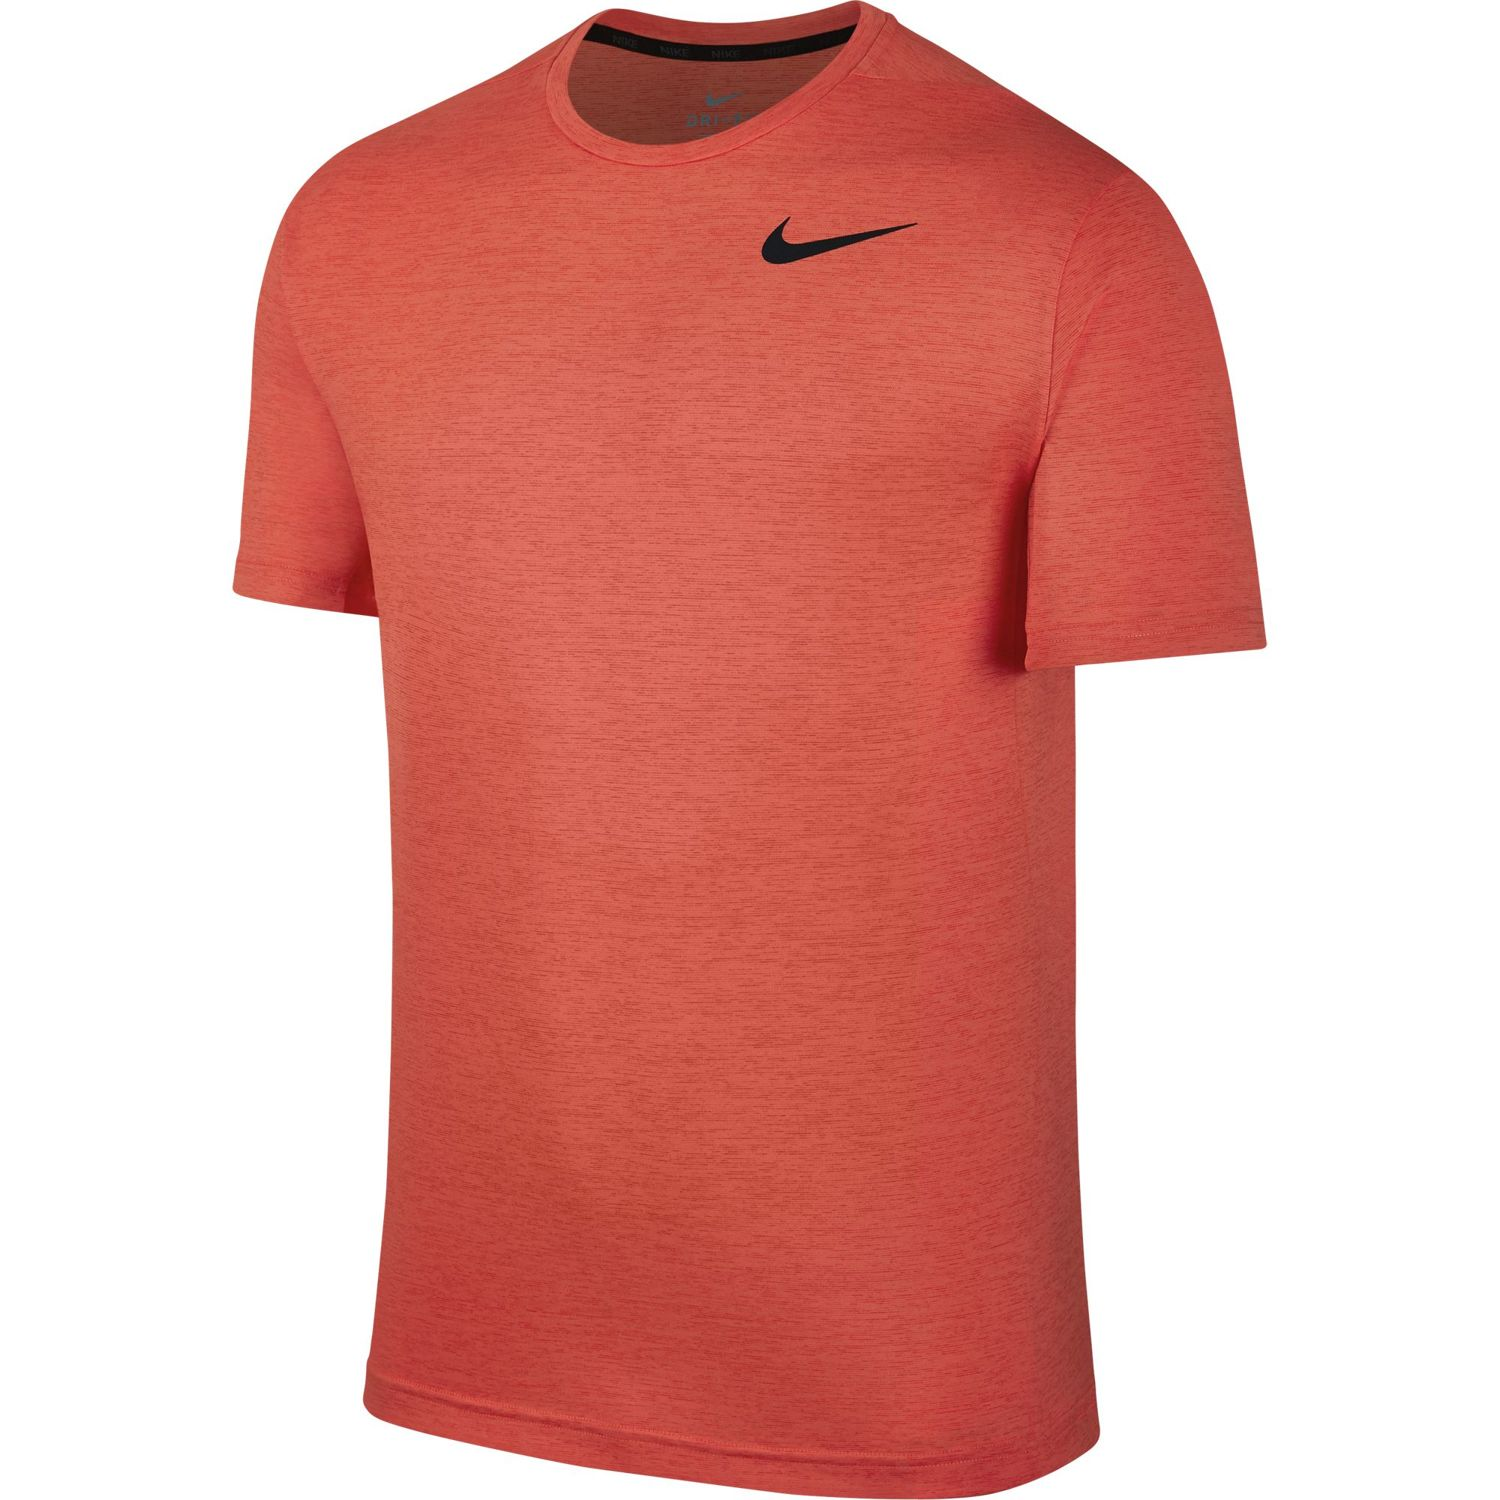 Nike DRI-FIT TRAINING SS